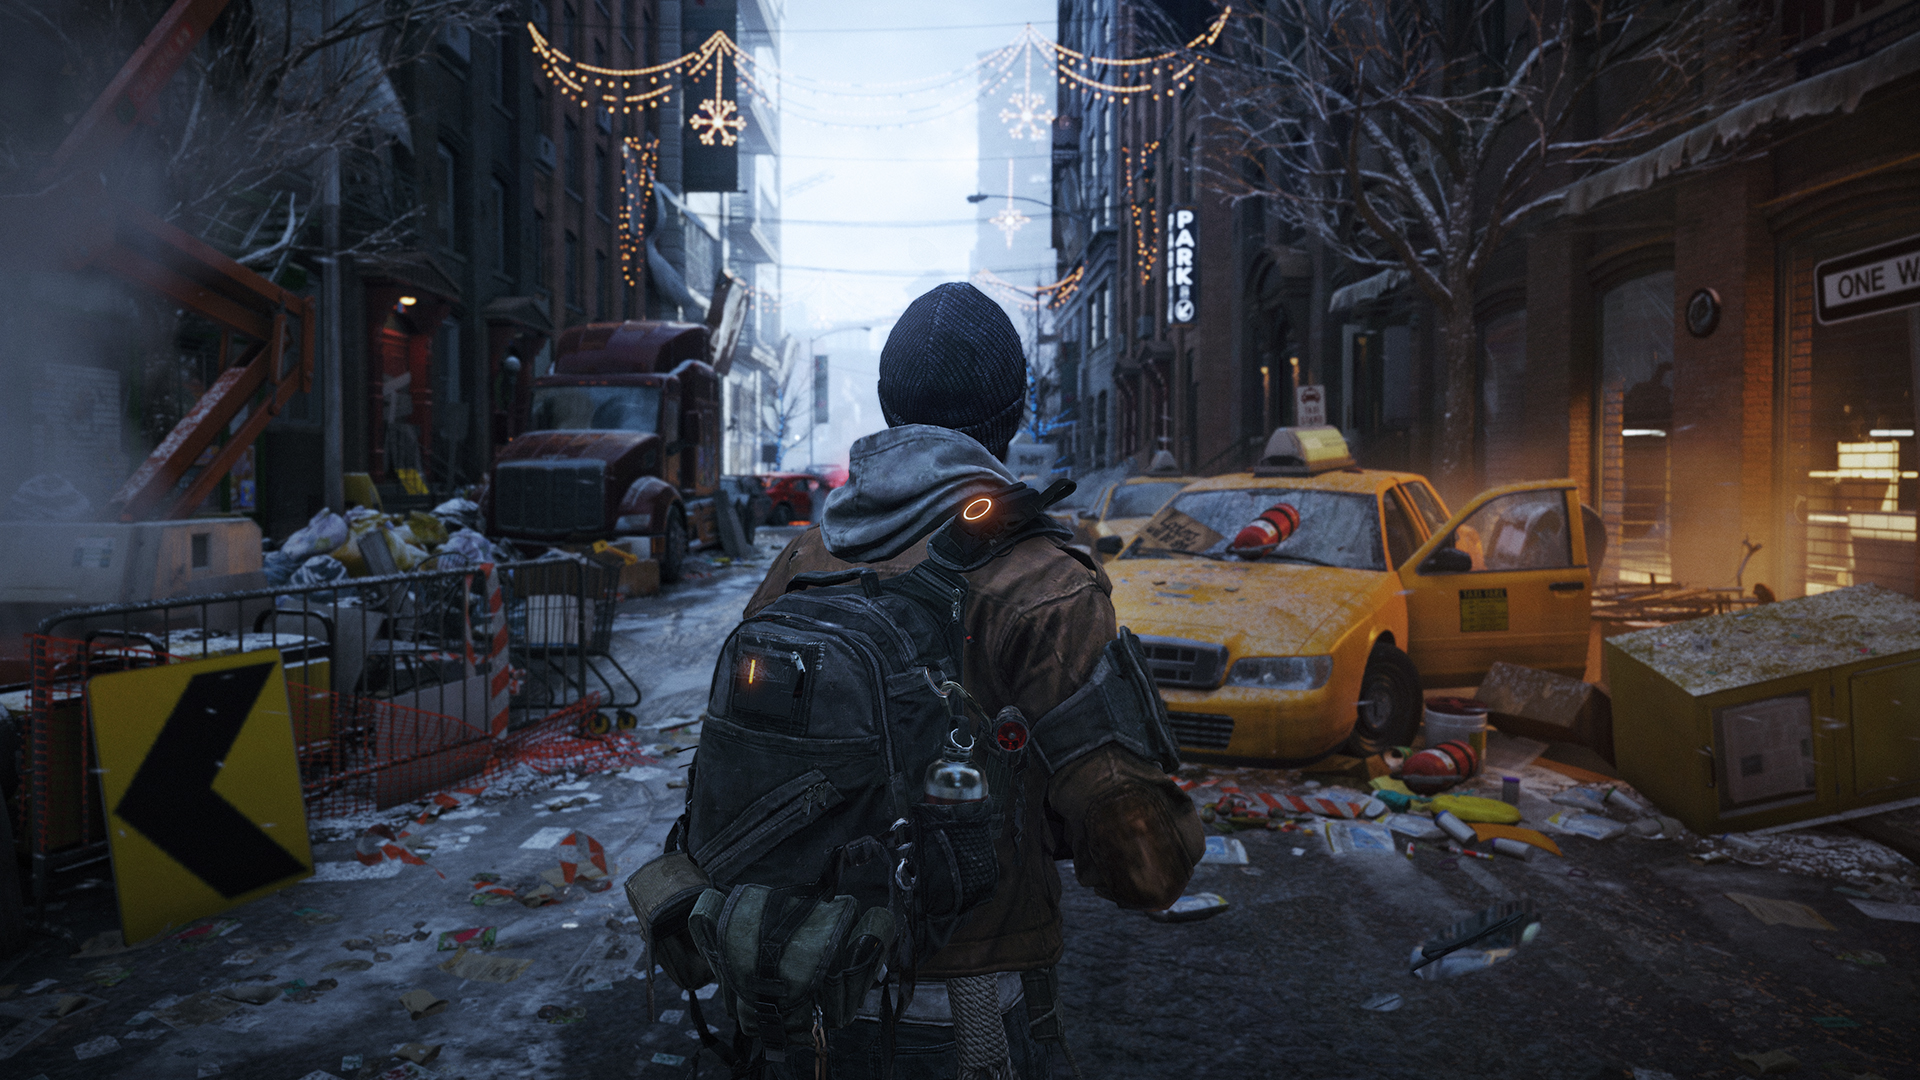 Tom Clancy's The Division Backgrounds, Compatible - PC, Mobile, Gadgets| 1920x1080 px